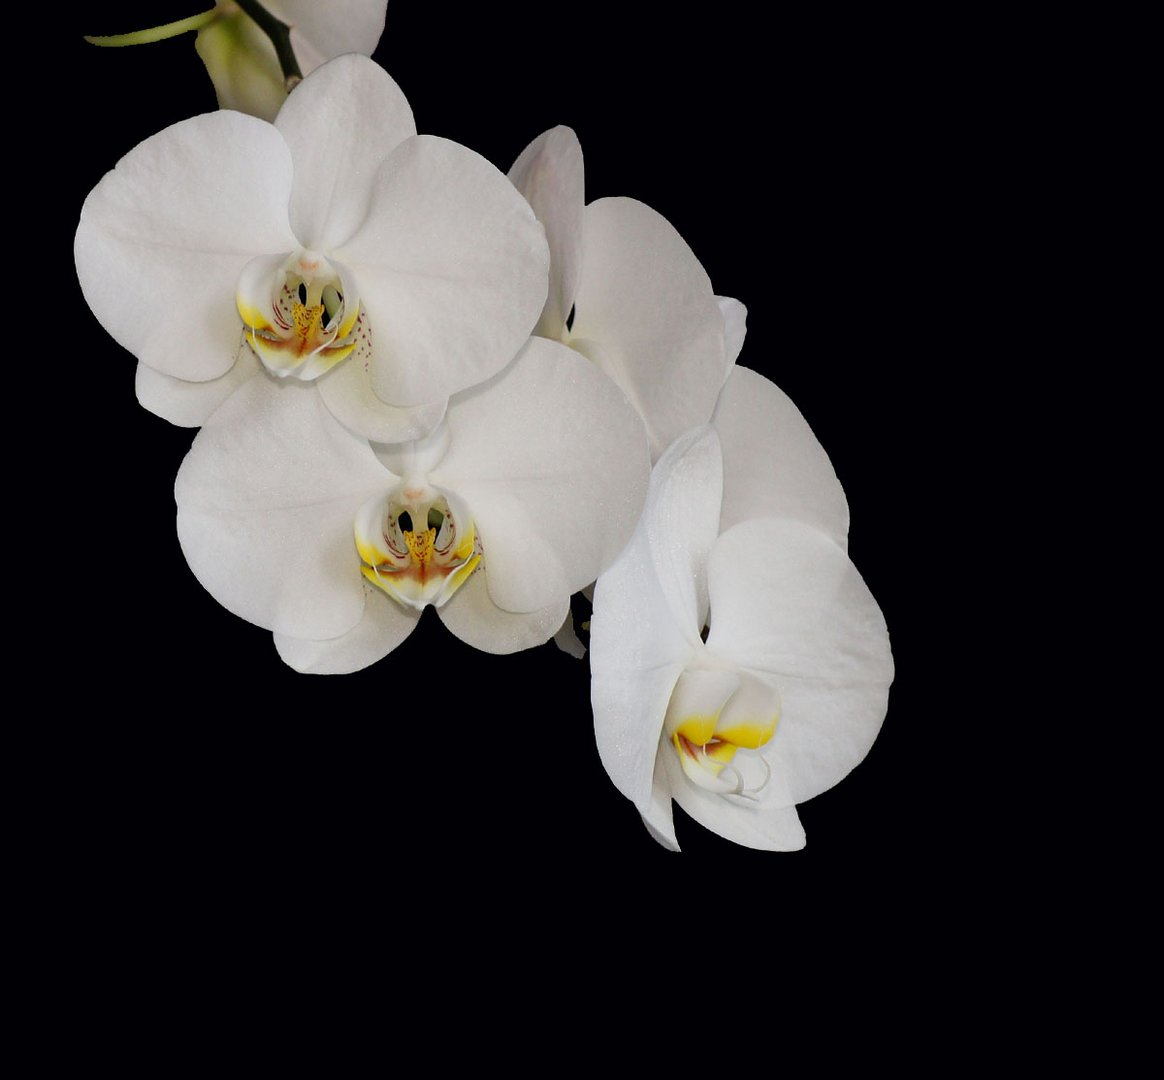 weisse phalaenopsis orchidee foto bild pflanzen. Black Bedroom Furniture Sets. Home Design Ideas